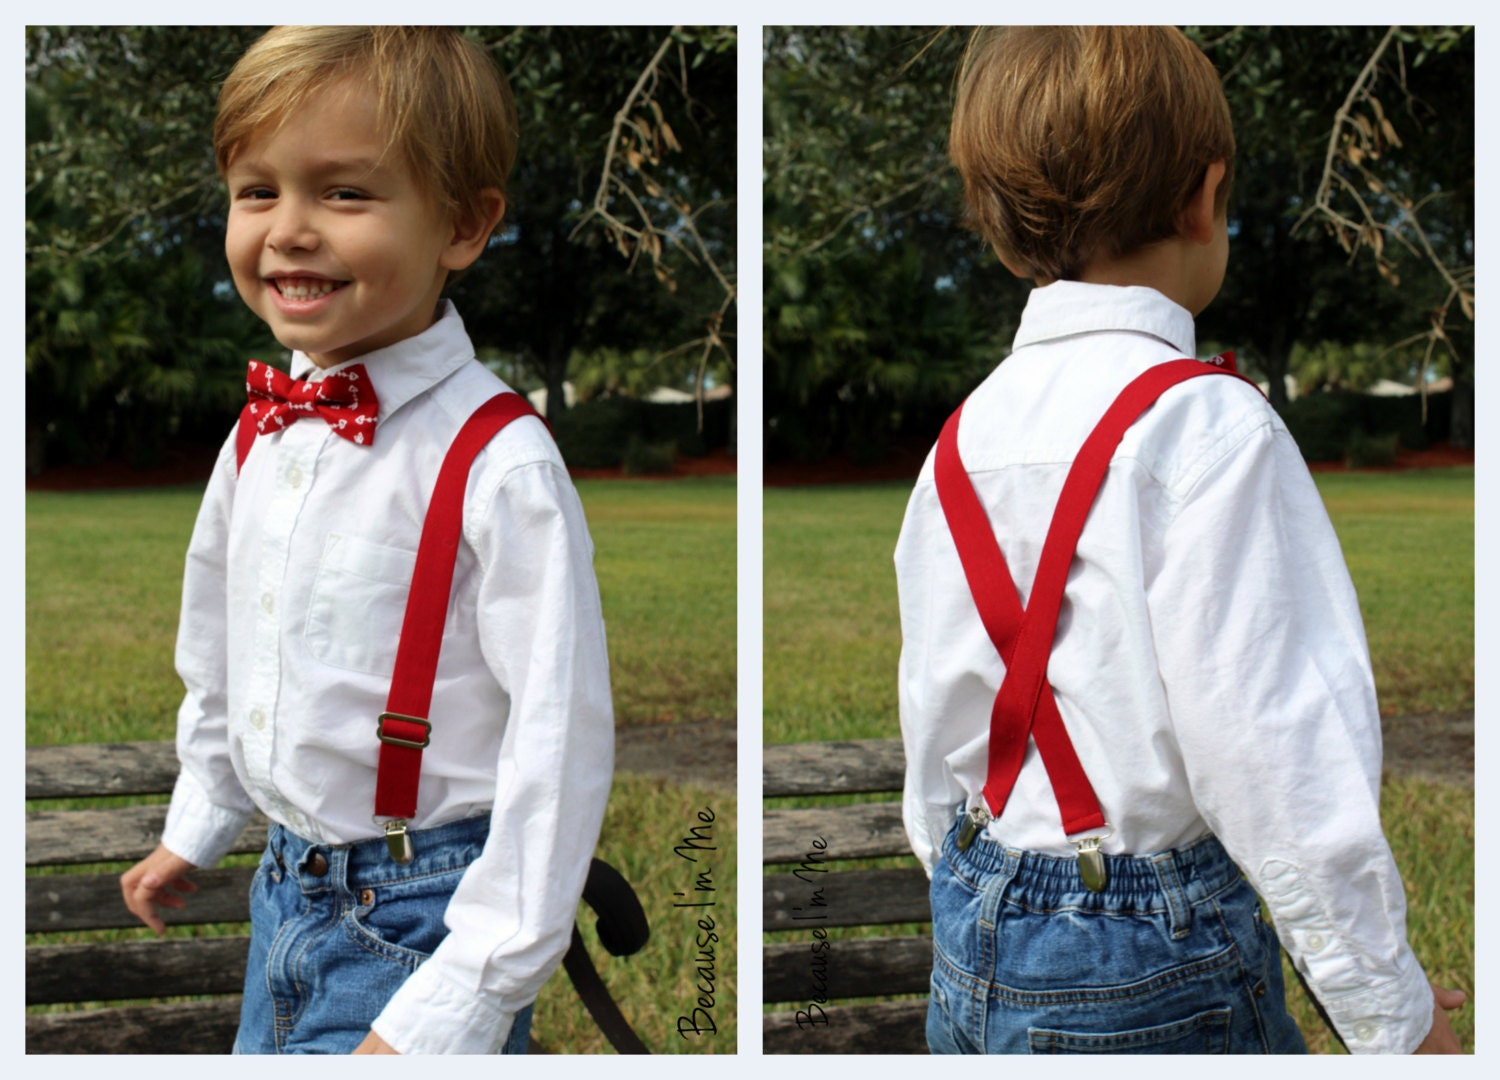 You searched for: boy suspenders! Etsy is the home to thousands of handmade, vintage, and one-of-a-kind products and gifts related to your search. No matter what you're looking for or where you are in the world, our global marketplace of sellers can help you find unique and affordable options. Let's get started!